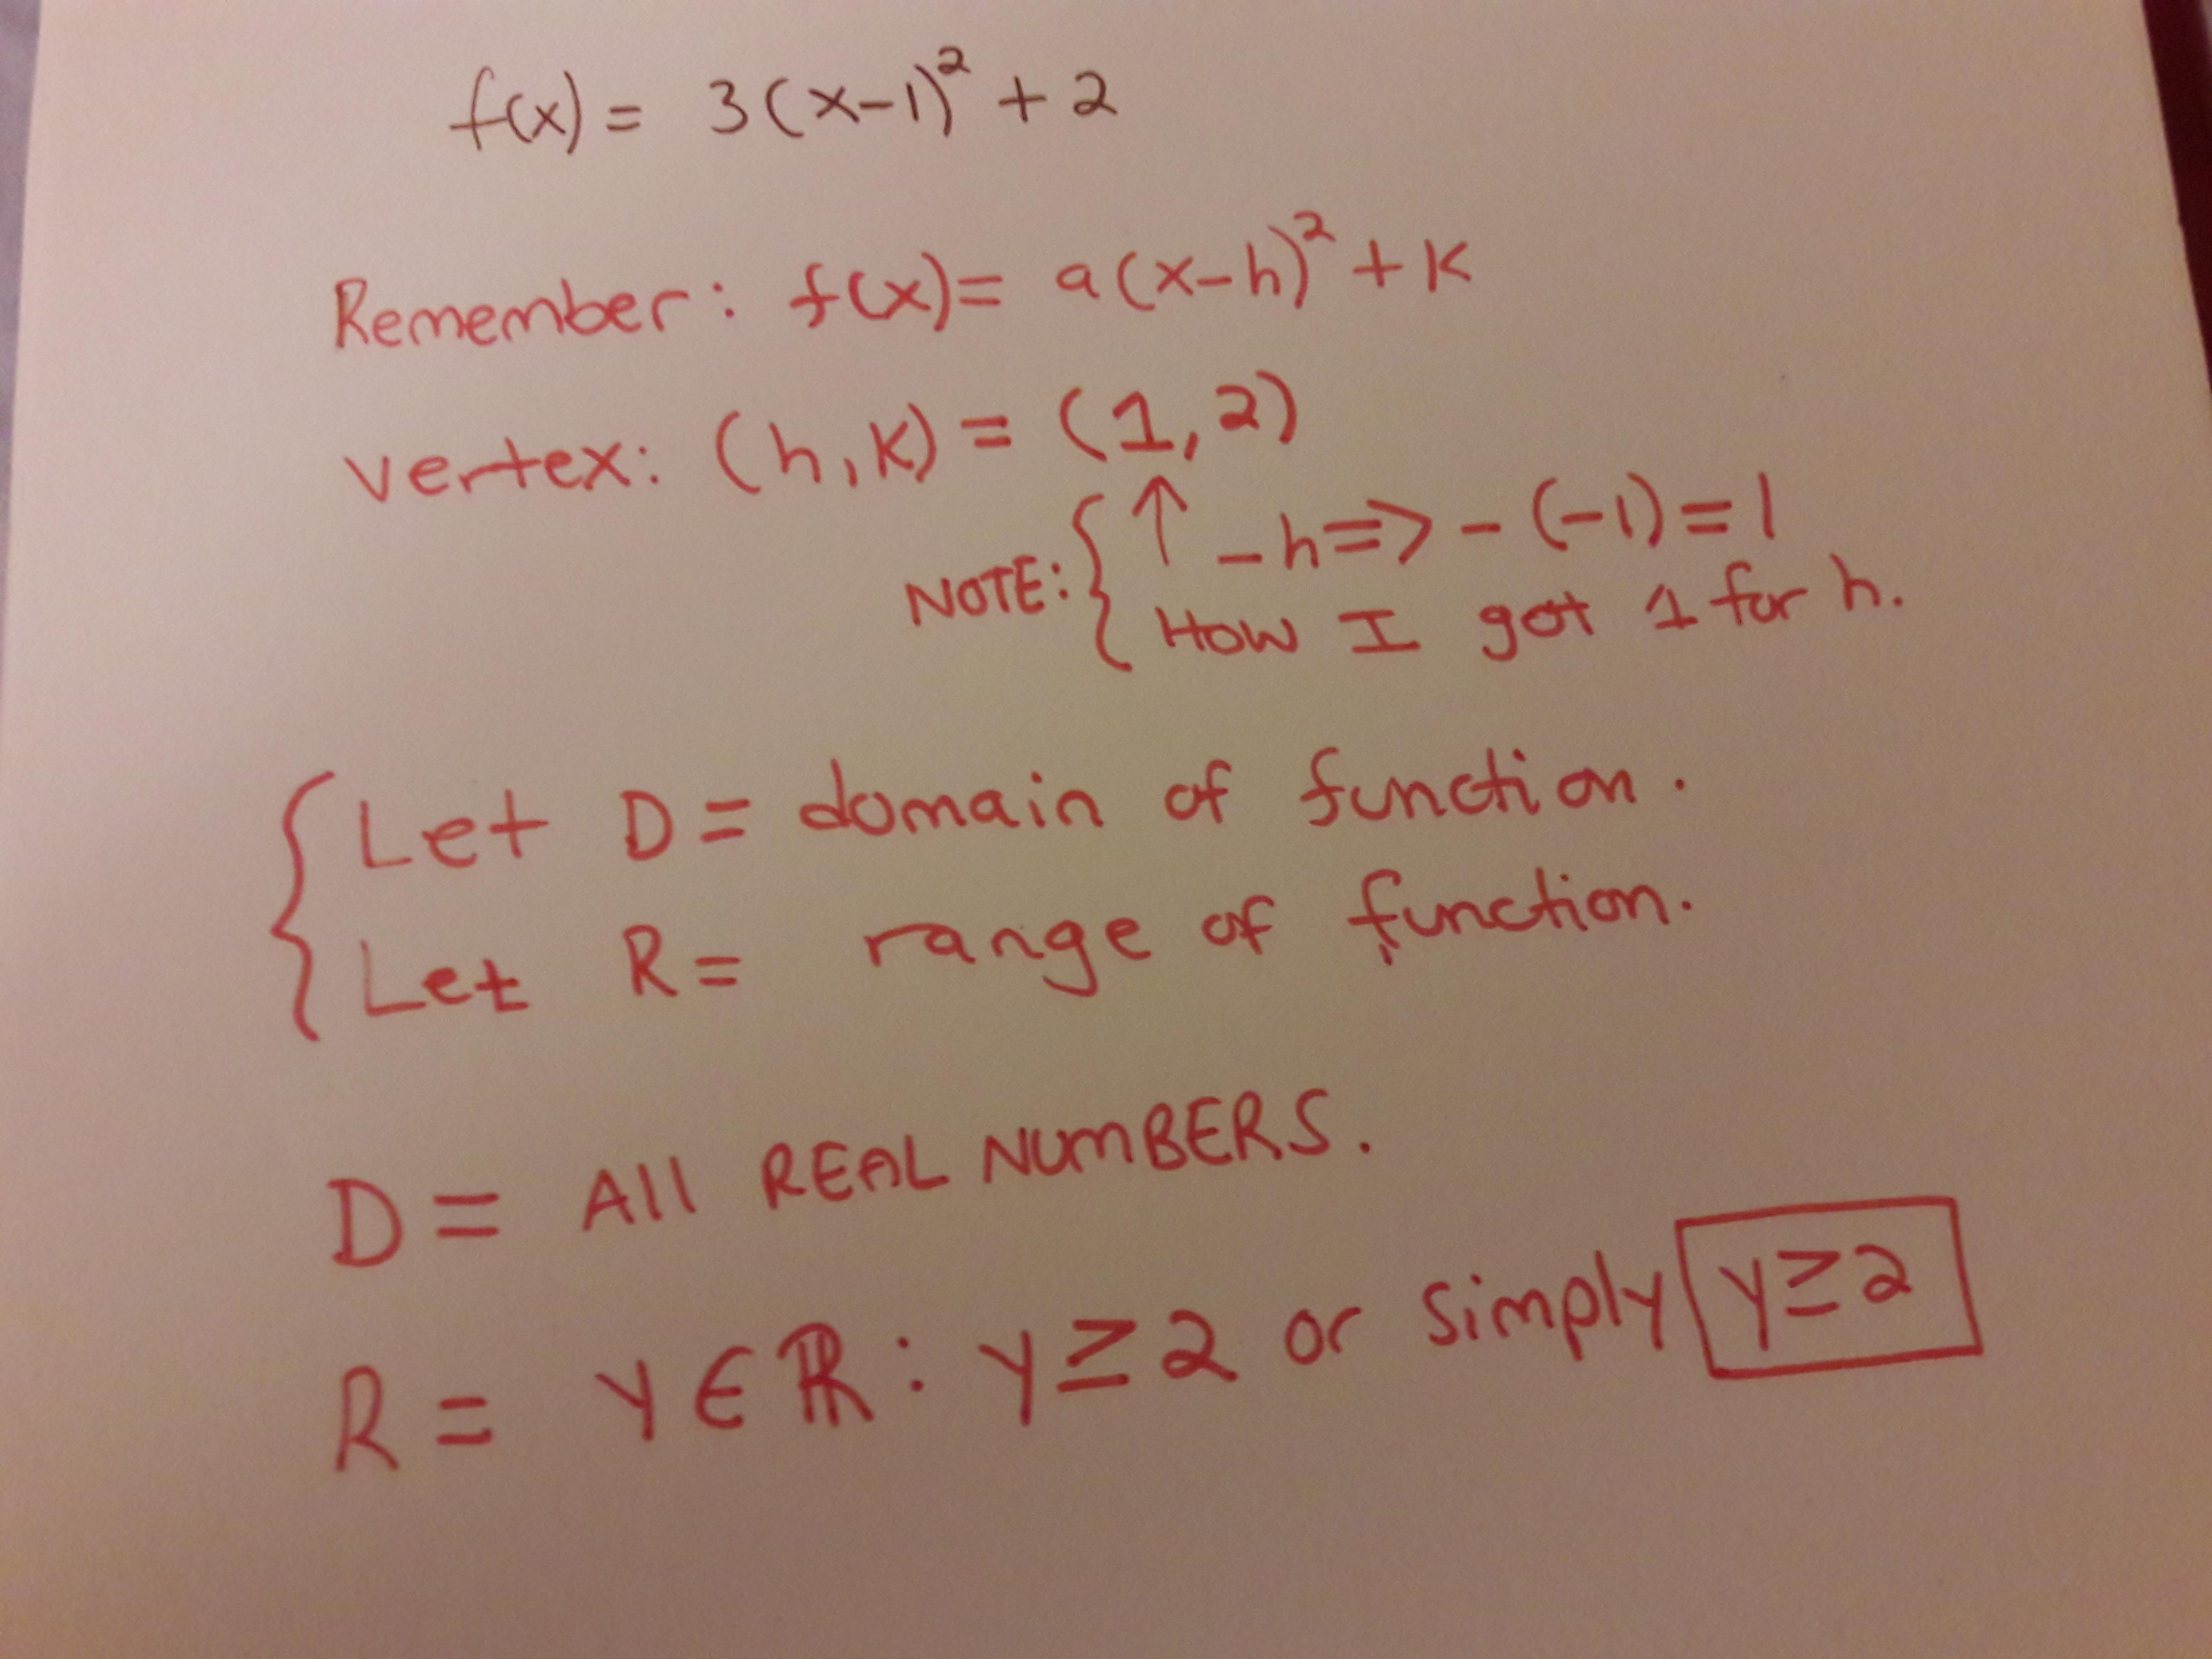 For the function f(x) = 3(x − 1)2 + 2, identify the vertex ...